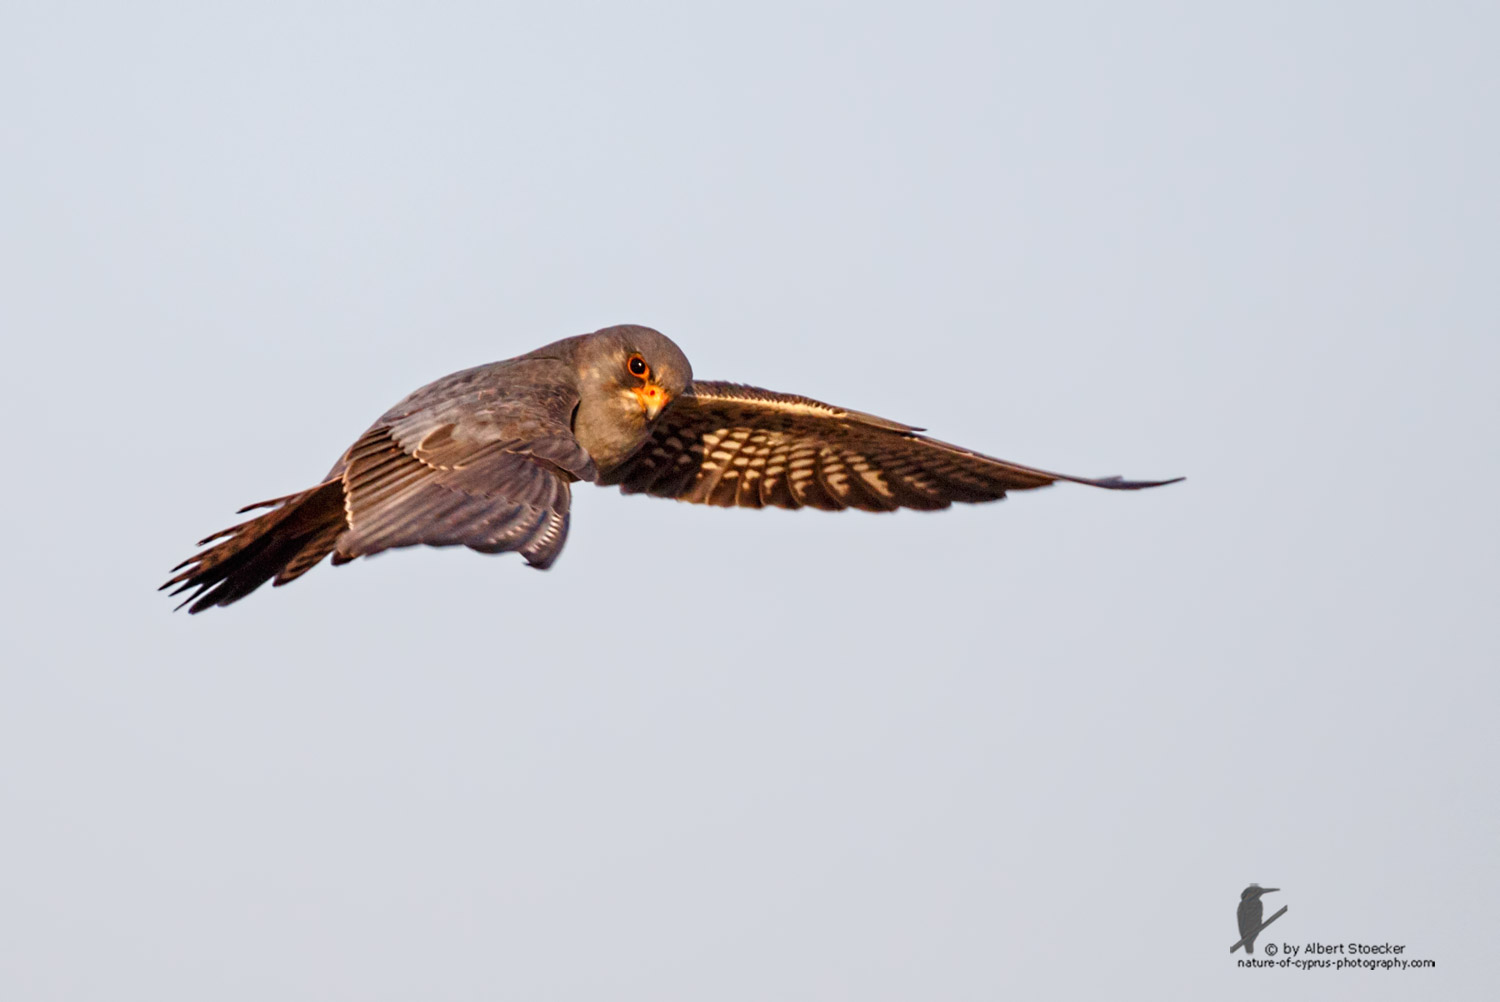 Falco vespertinus - Red-footed Falcon, male, Rotfußfalke, Cyprus, Agia Varvara-Anarita, Mai 2016